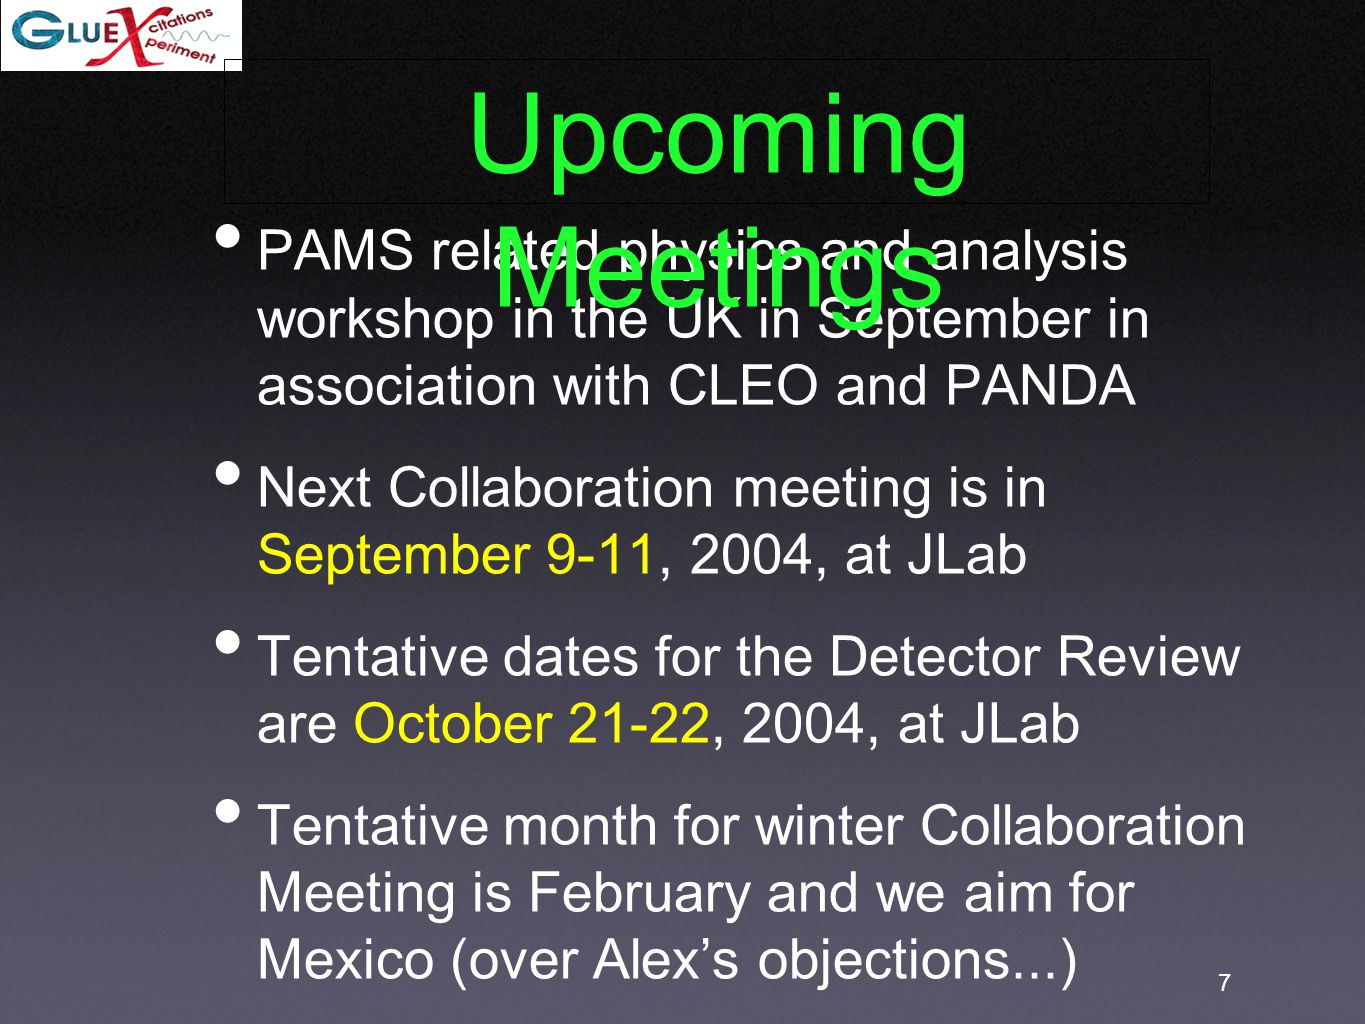 7 PAMS related physics and analysis workshop in the UK in September in association with CLEO and PANDA Next Collaboration meeting is in September 9-11, 2004, at JLab Tentative dates for the Detector Review are October 21-22, 2004, at JLab Tentative month for winter Collaboration Meeting is February and we aim for Mexico (over Alex's objections...) Upcoming Meetings